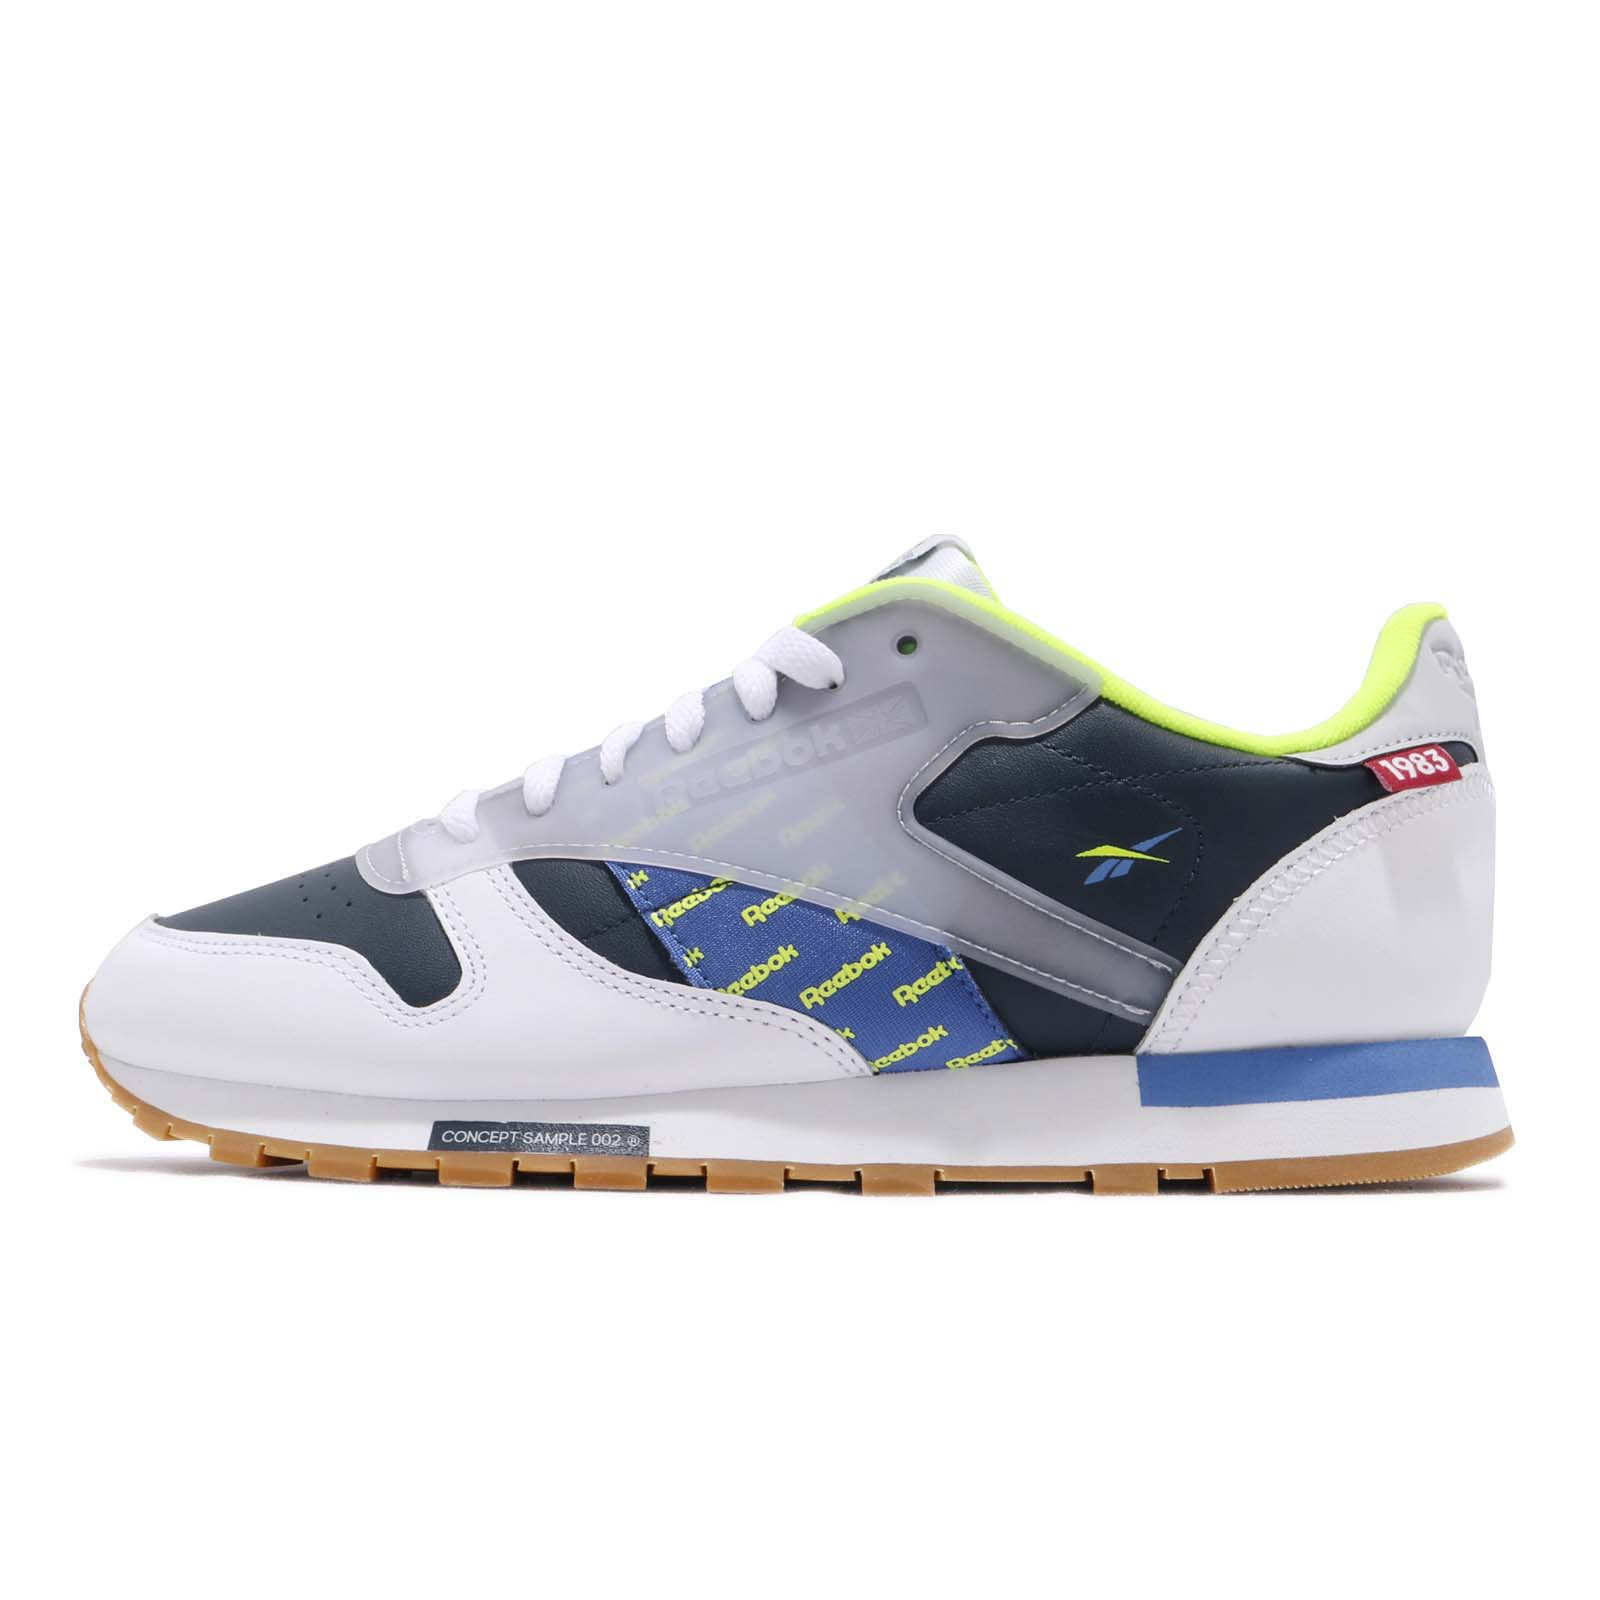 size 40 14786 77ea1 Reebok Classic Leather Altered ATI White Navy Lime Grey Gum Men Shoes DV5241